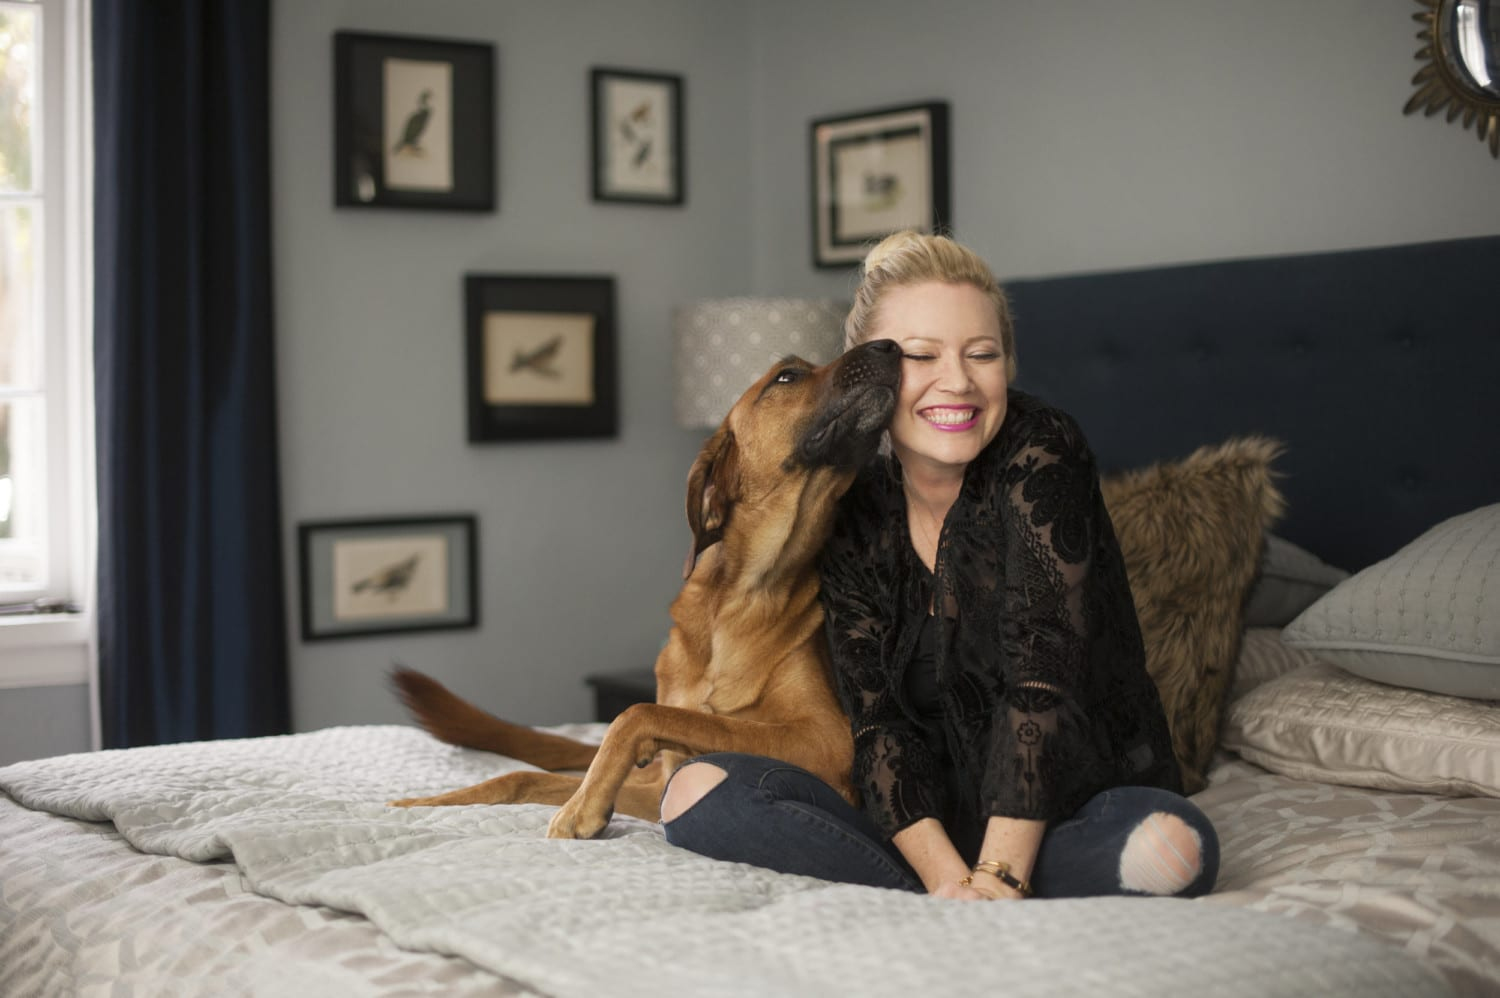 A woman and her dog on a bed